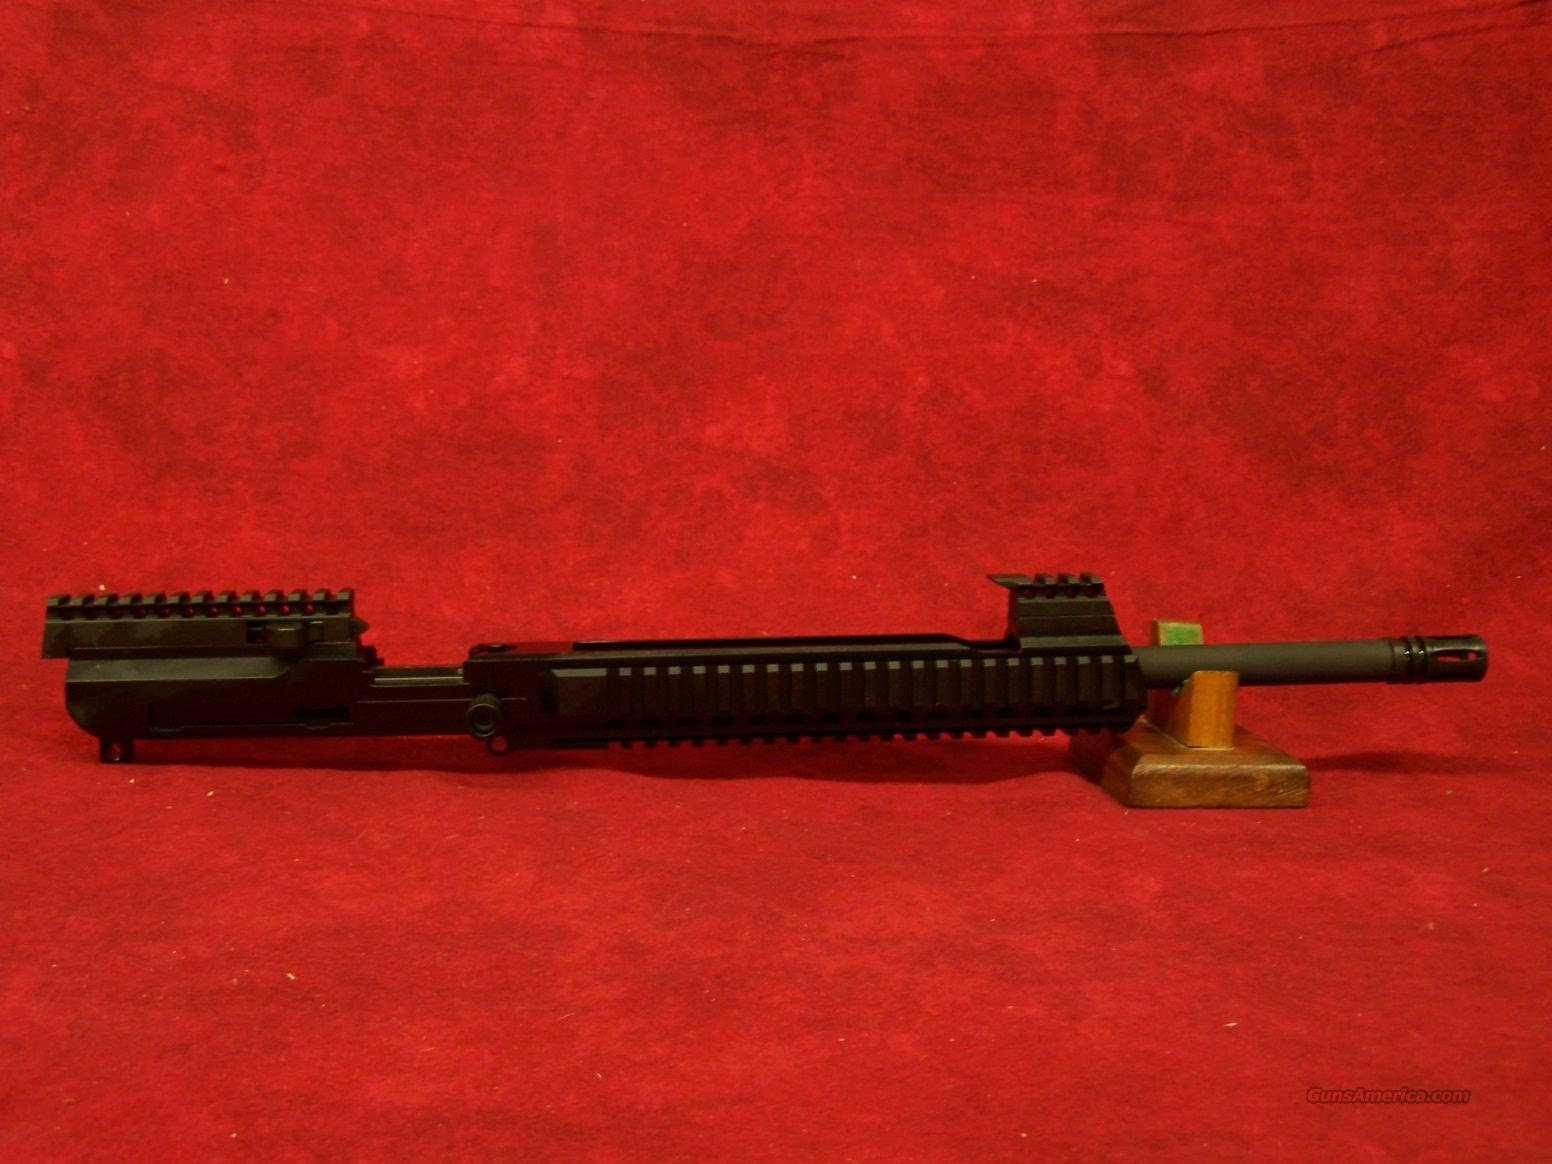 AR-57 PDW Upper 5.7x28mm with 50 round mag  Guns > Rifles > AR-15 Rifles - Small Manufacturers > Upper Only